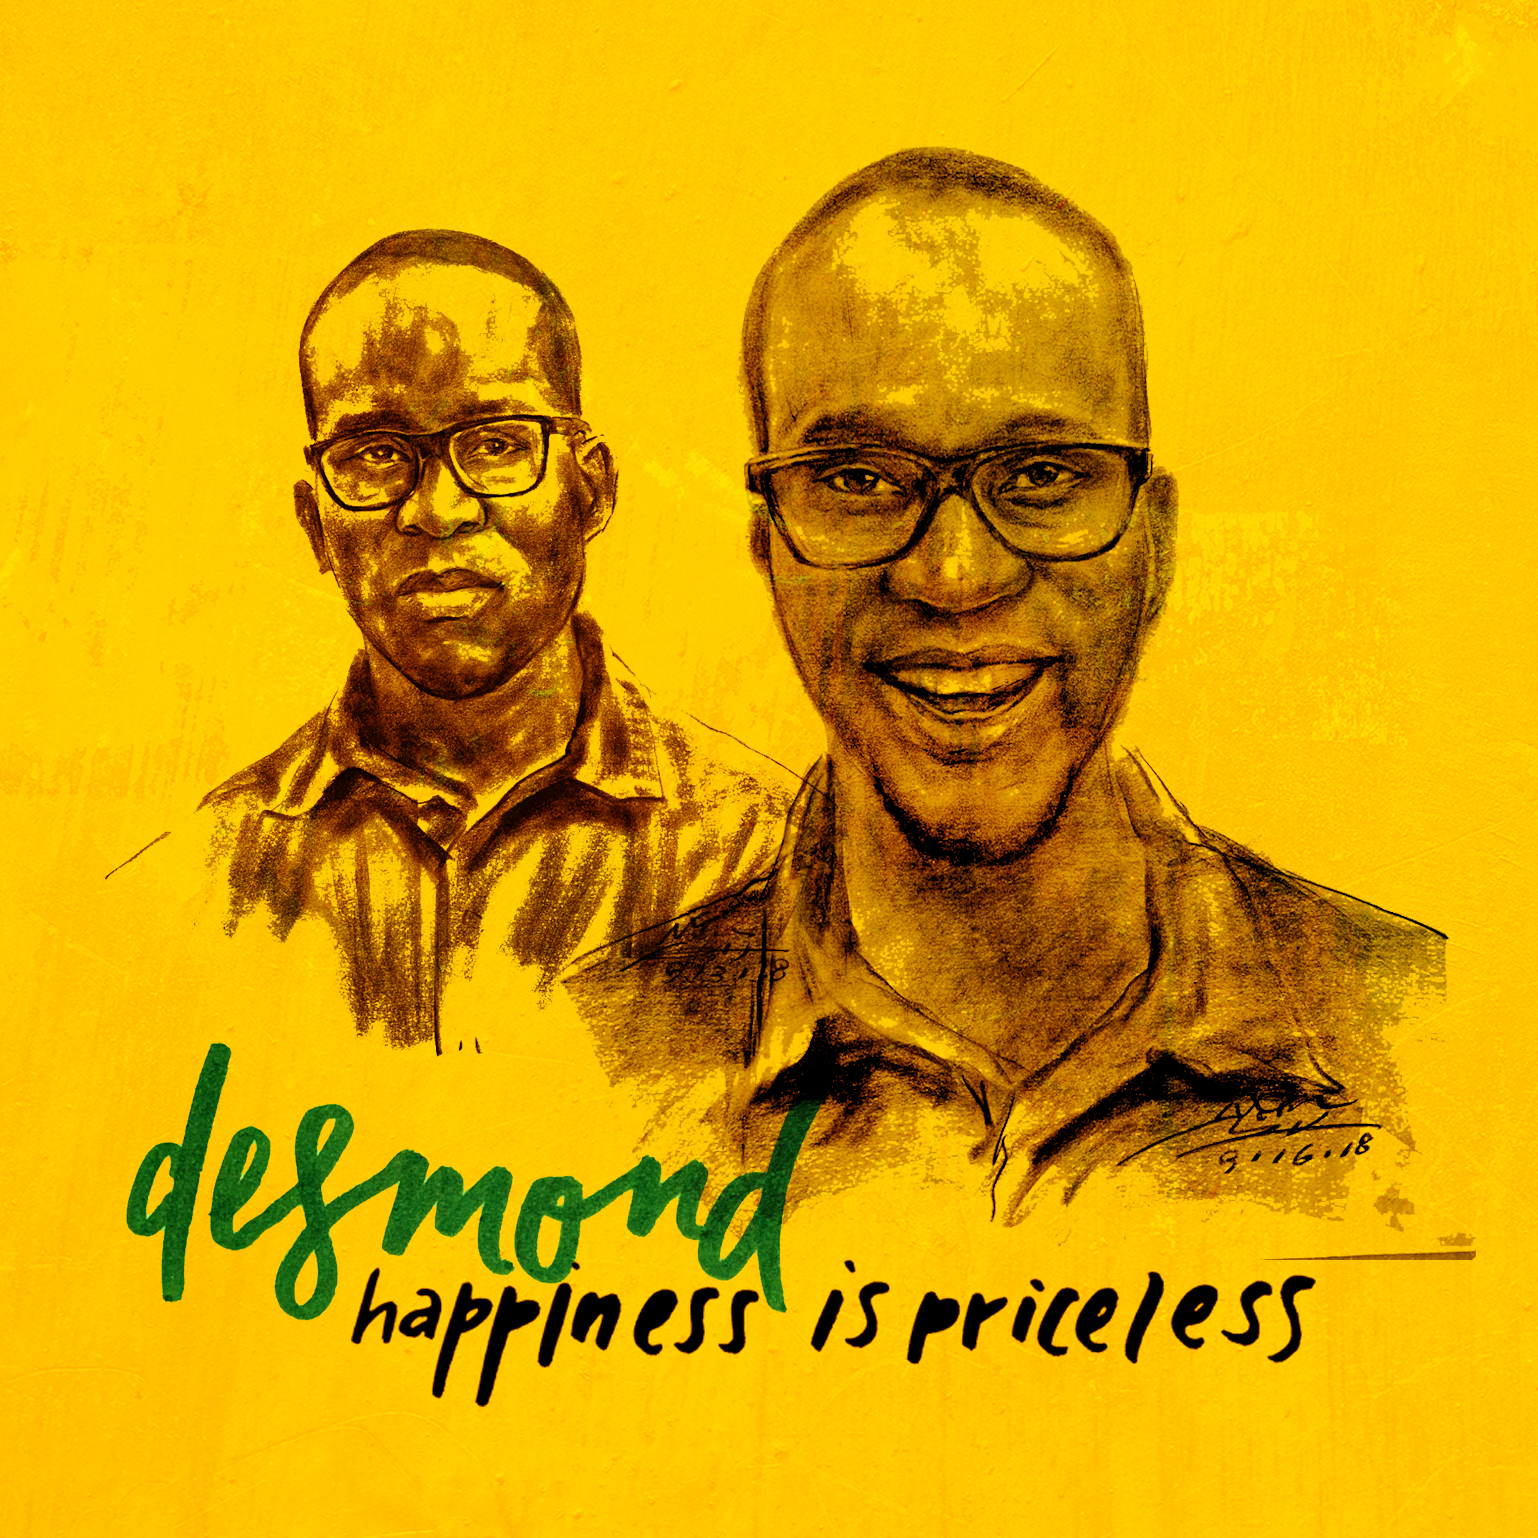 Happiness Is Priceless by desmond